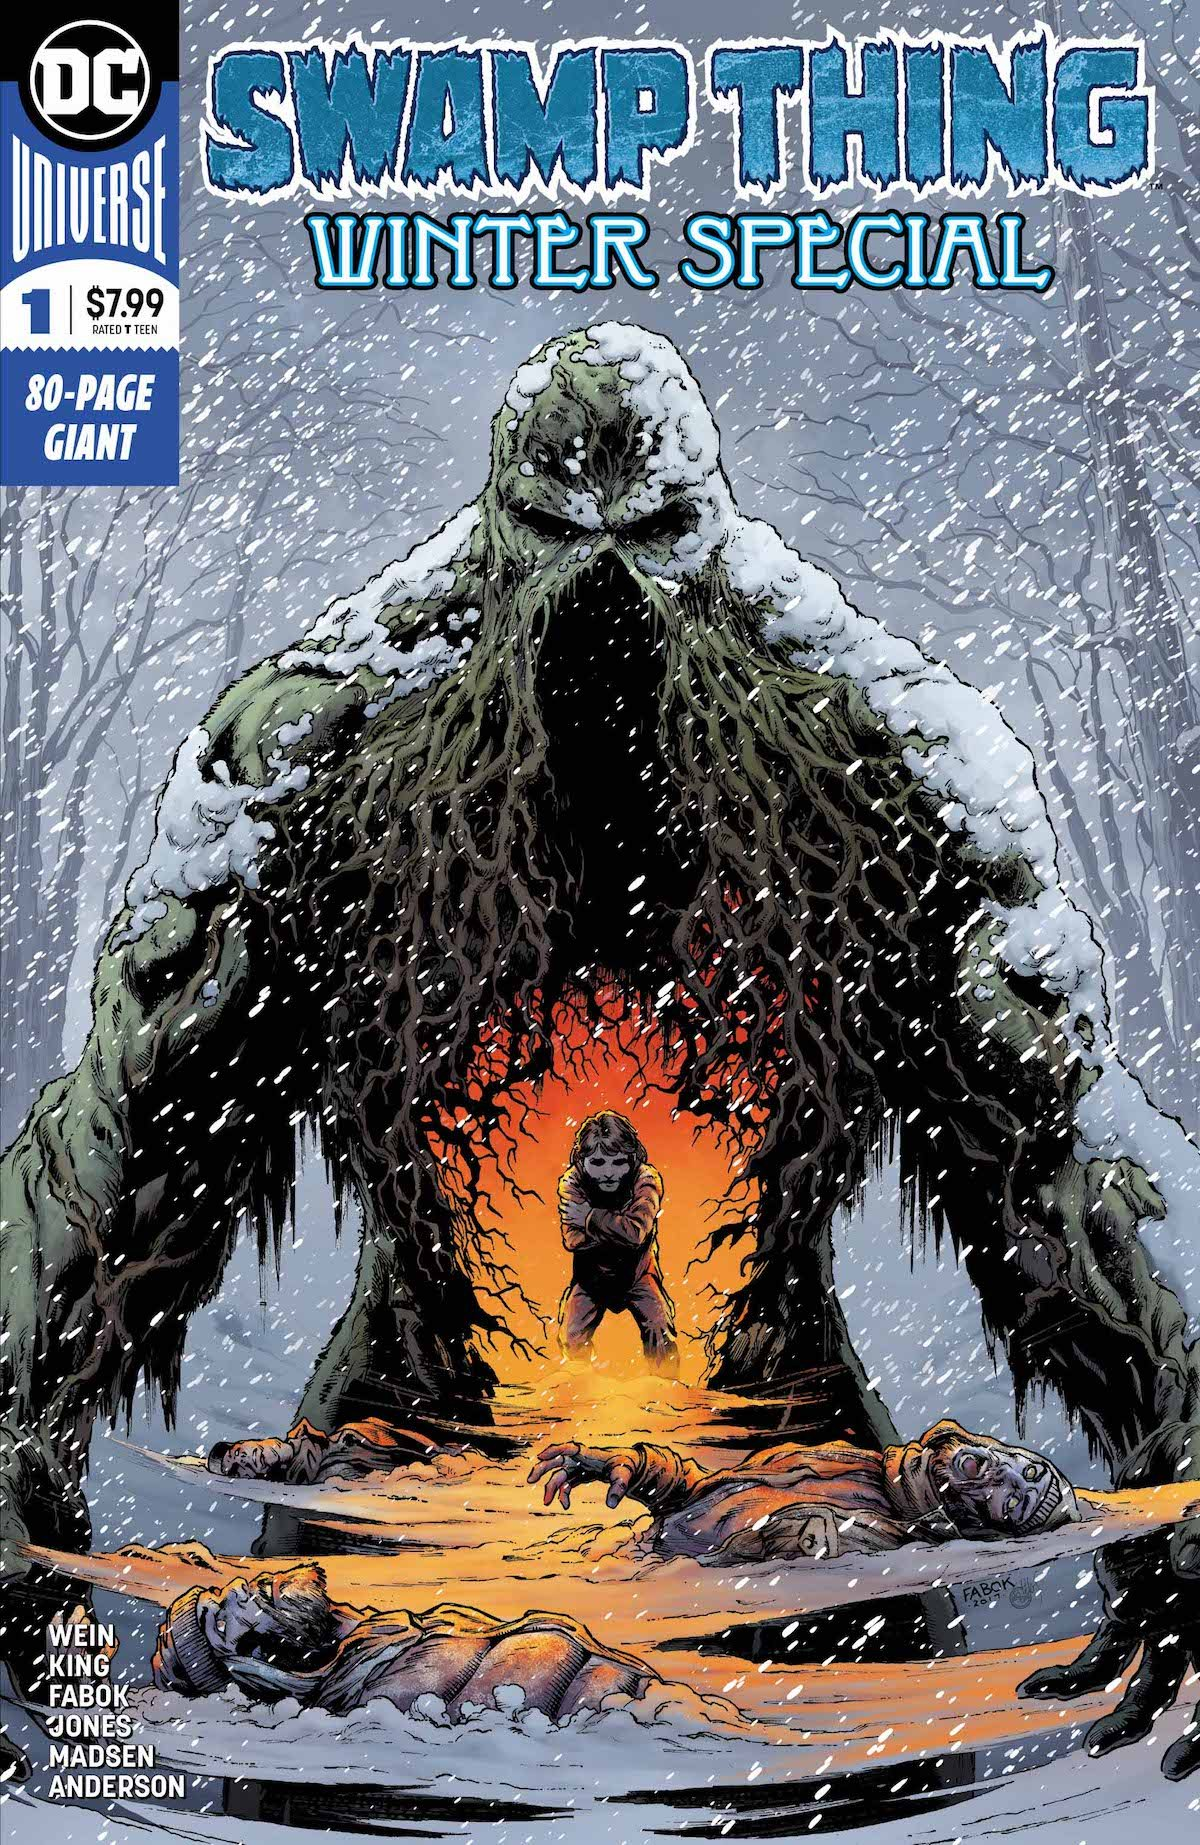 Swamp Thing Winter Special #1 cover